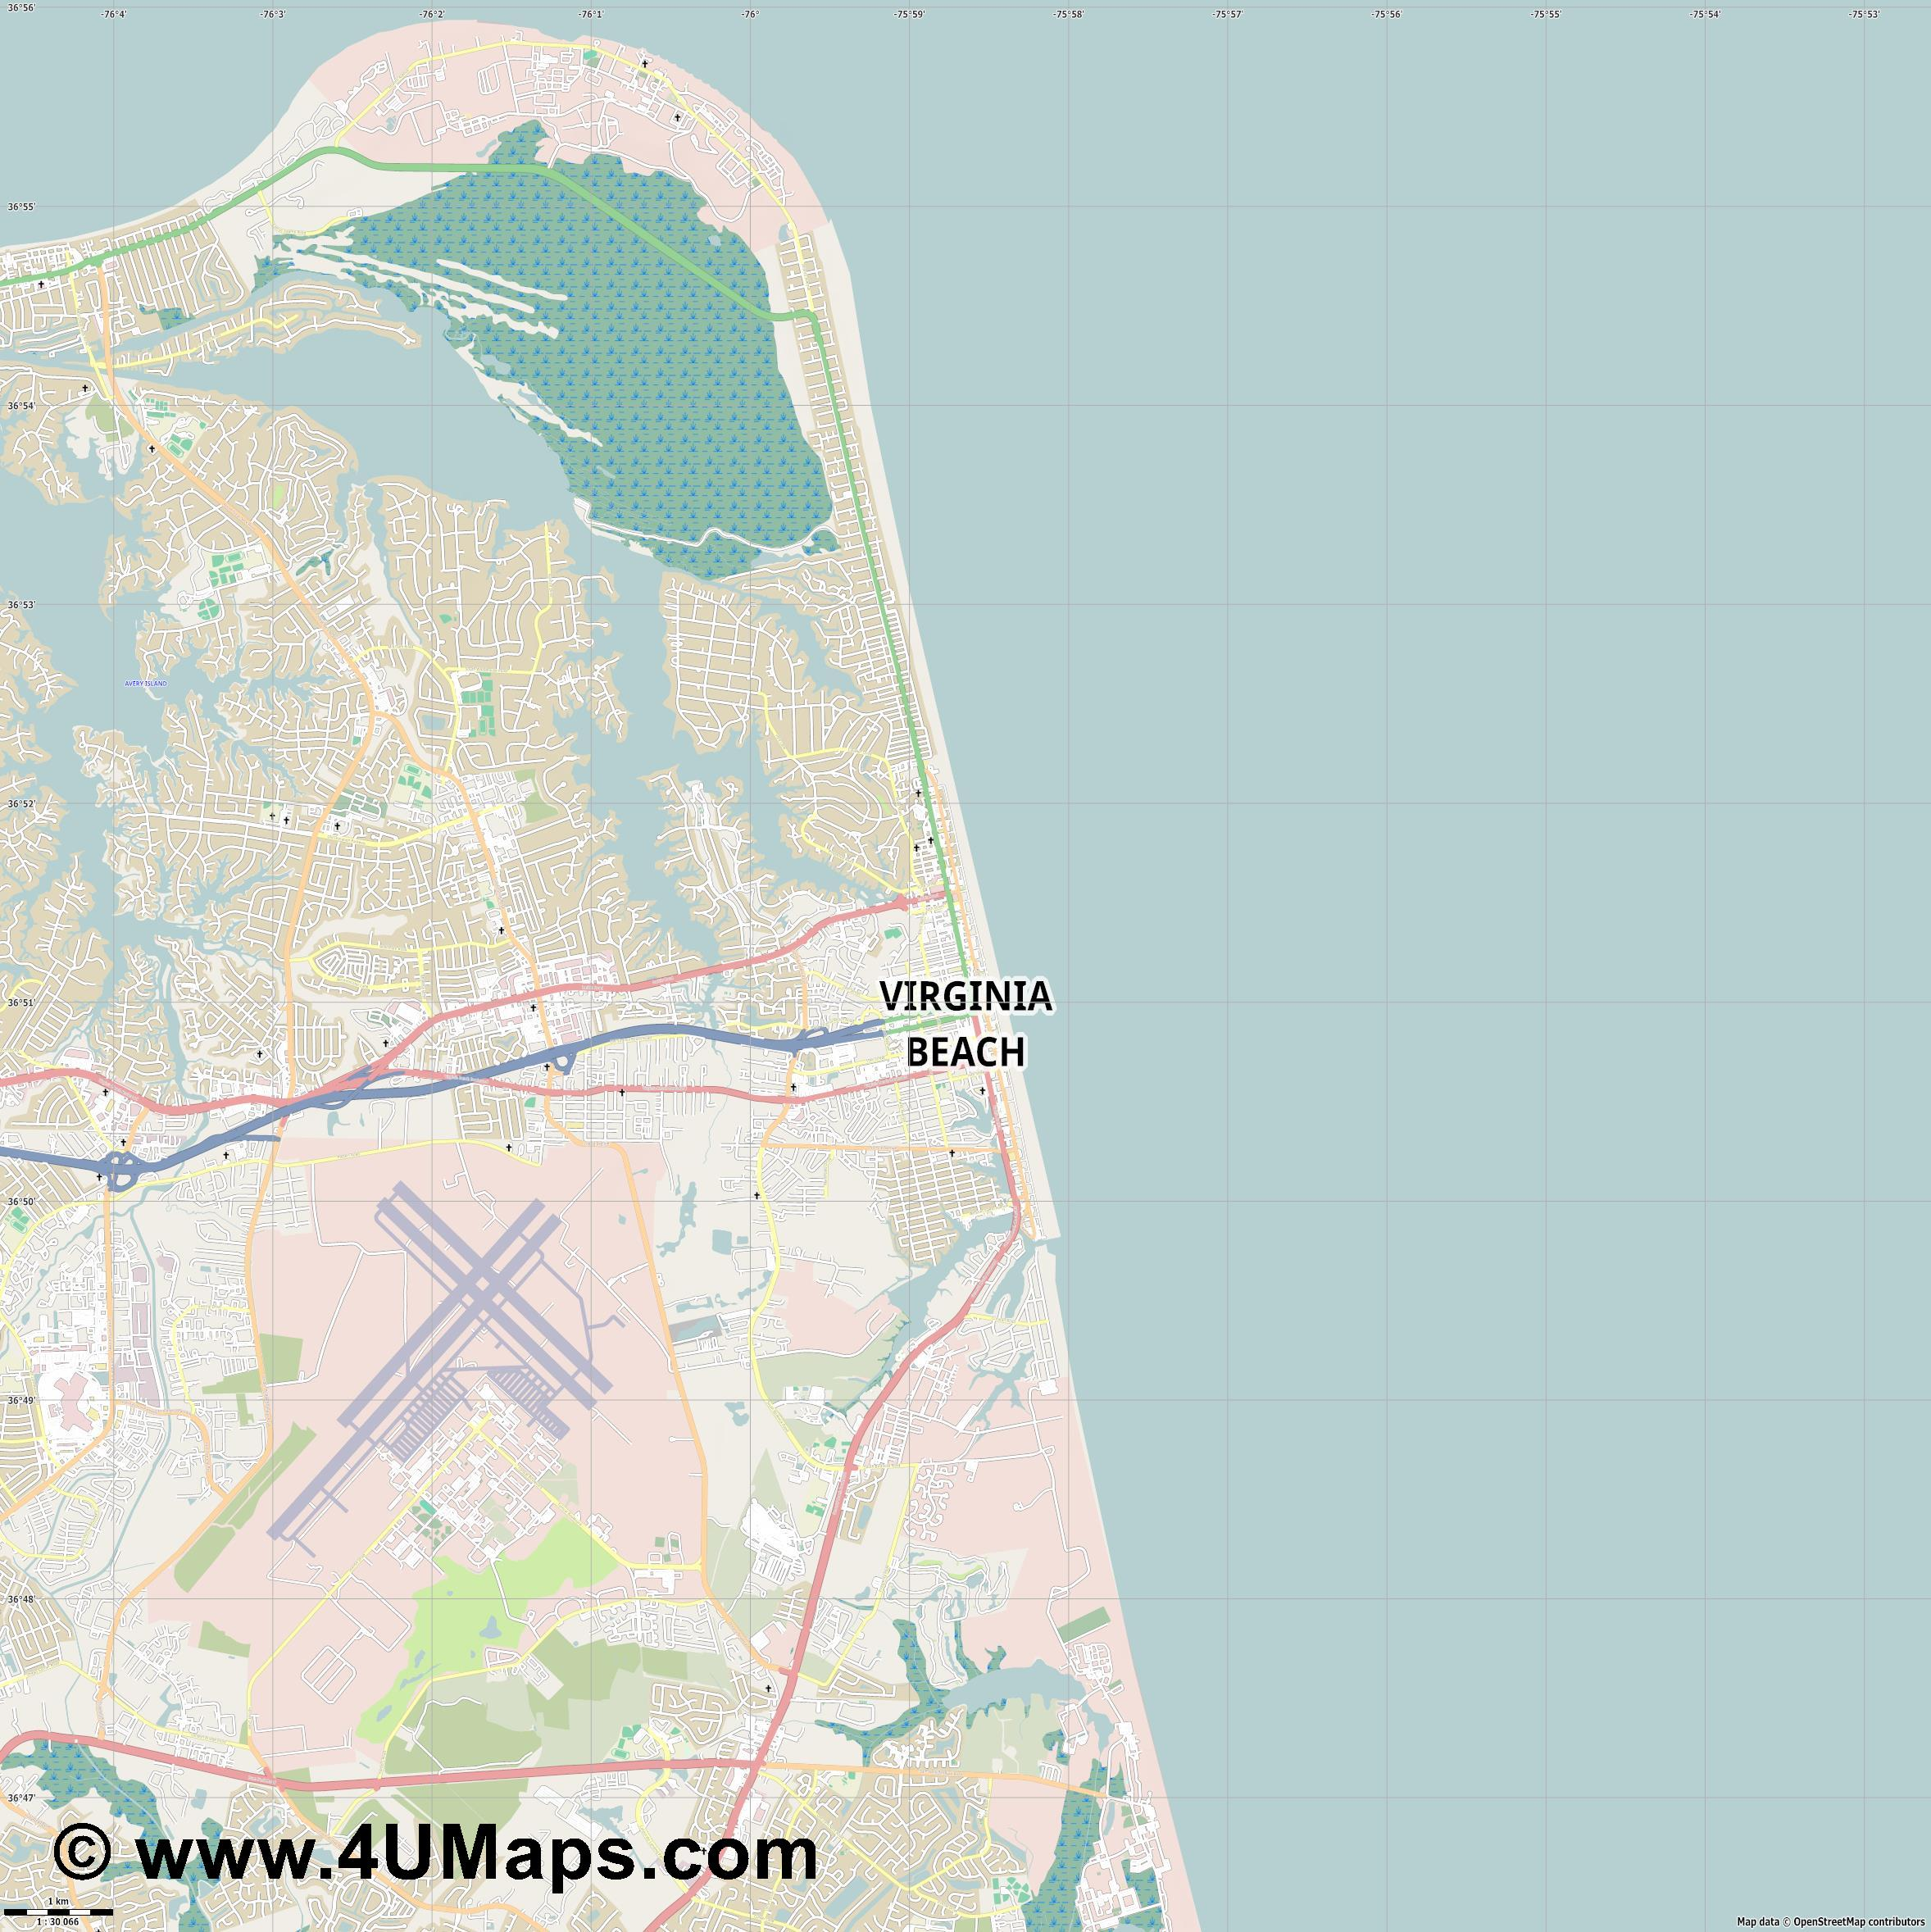 Virginia Beach  jpg high detail, large area preview vector city map